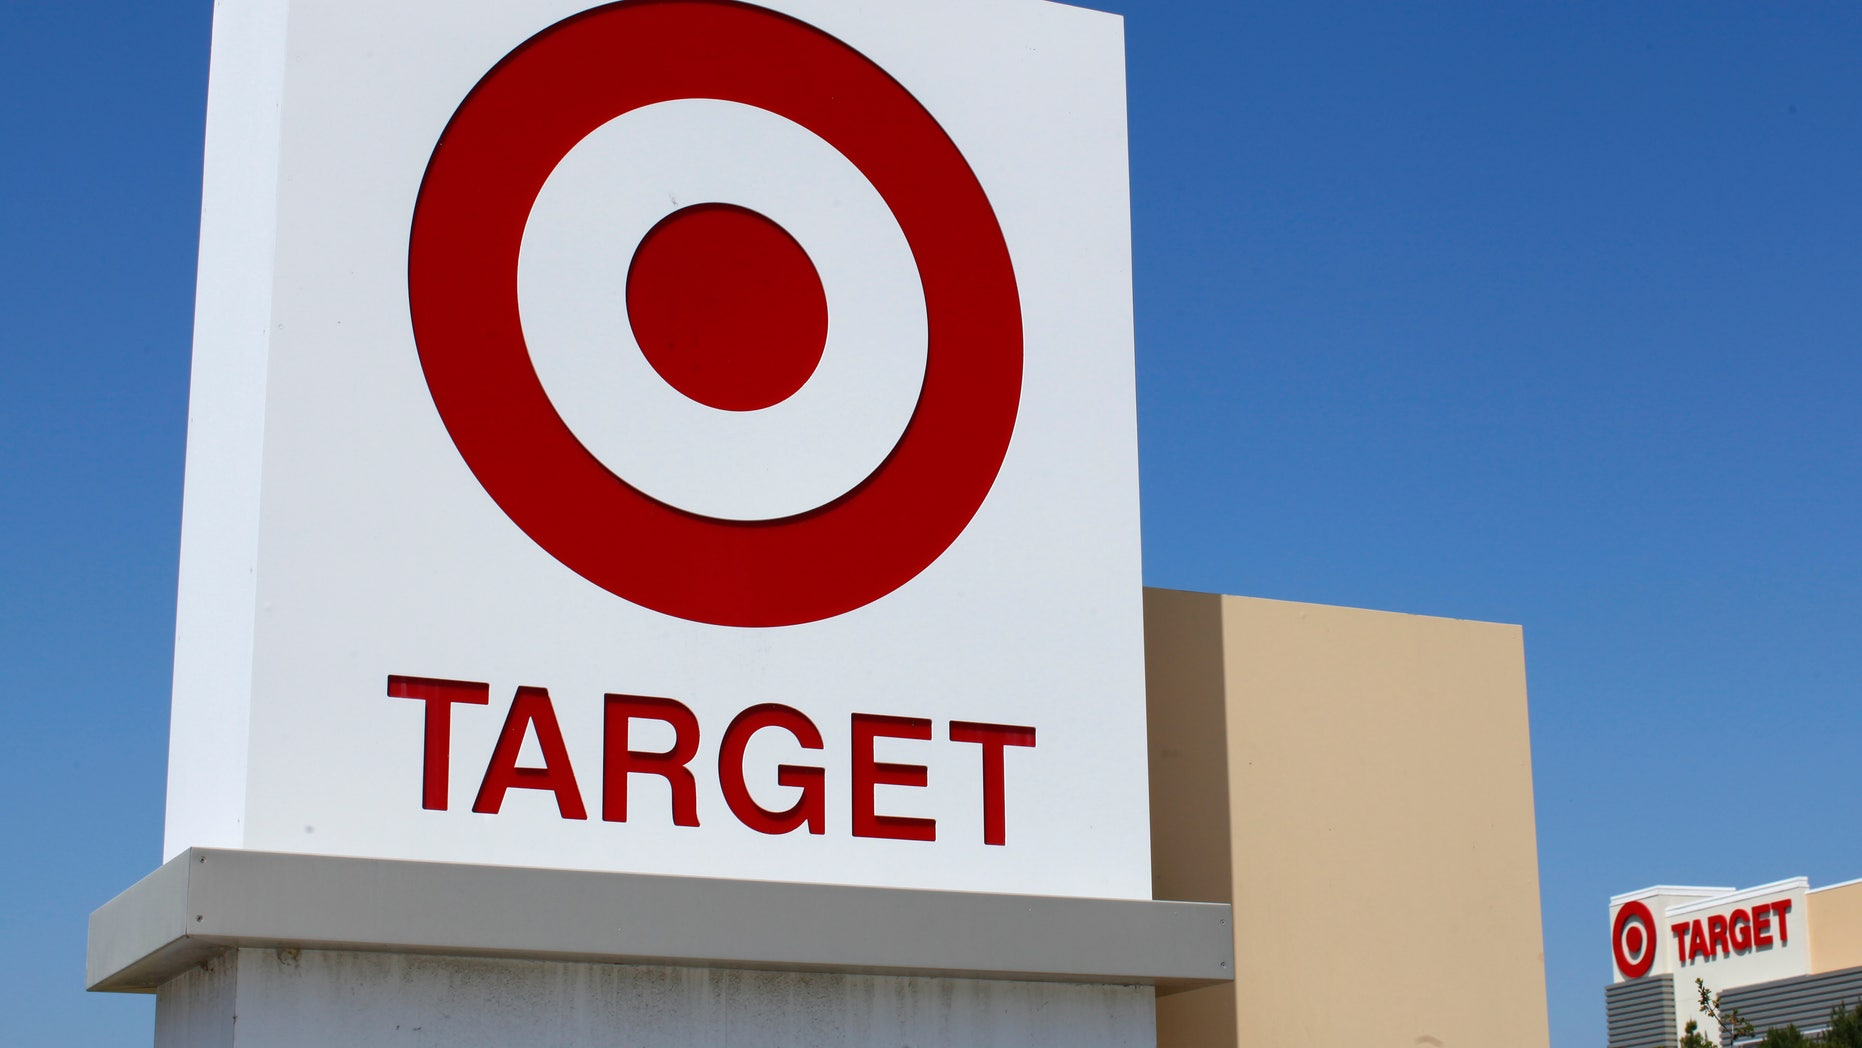 A Target sign is pictured next to one of their stores in Vista, California April 16, 2014.   REUTERS/Mike Blake   (UNITED STATES - Tags: BUSINESS) - RTR3LKGA